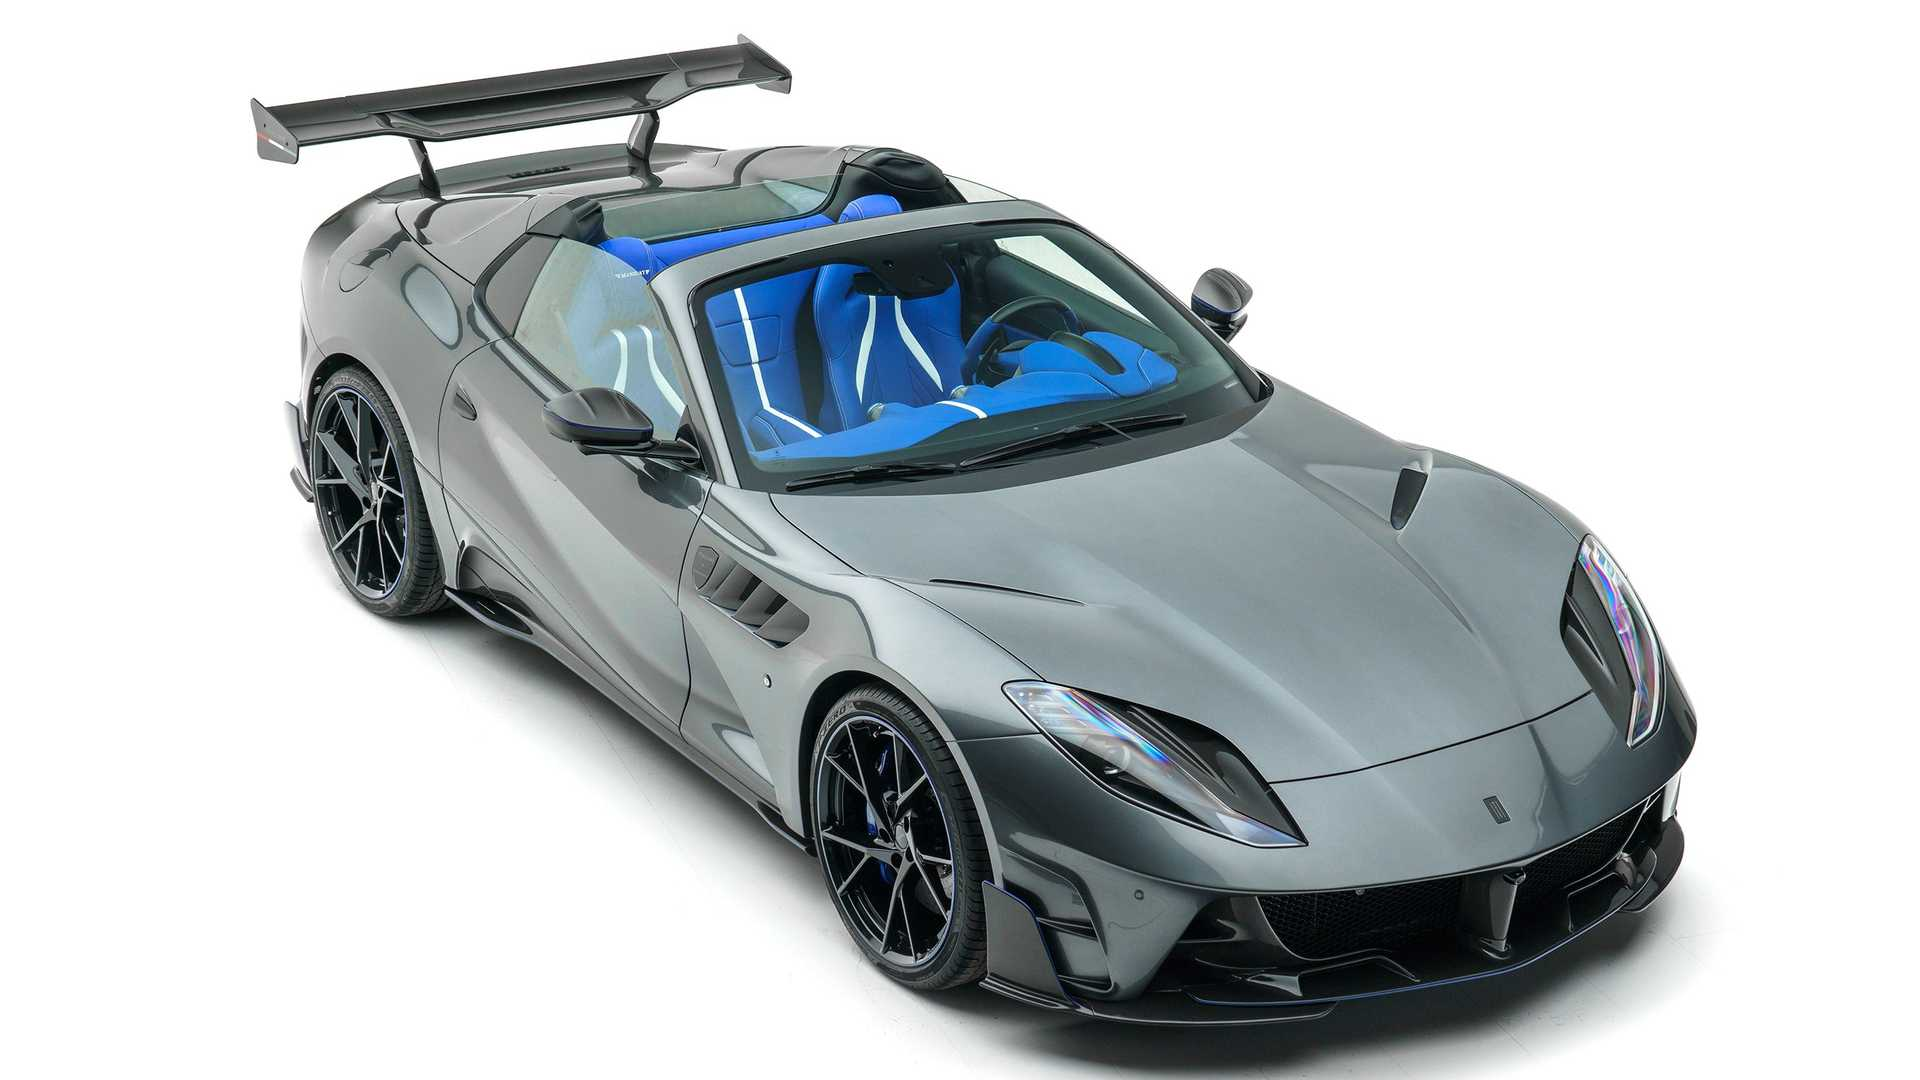 Ferrari 812 Gts Stallone By Mansory Gives The V12 Cabrio A Wild Look